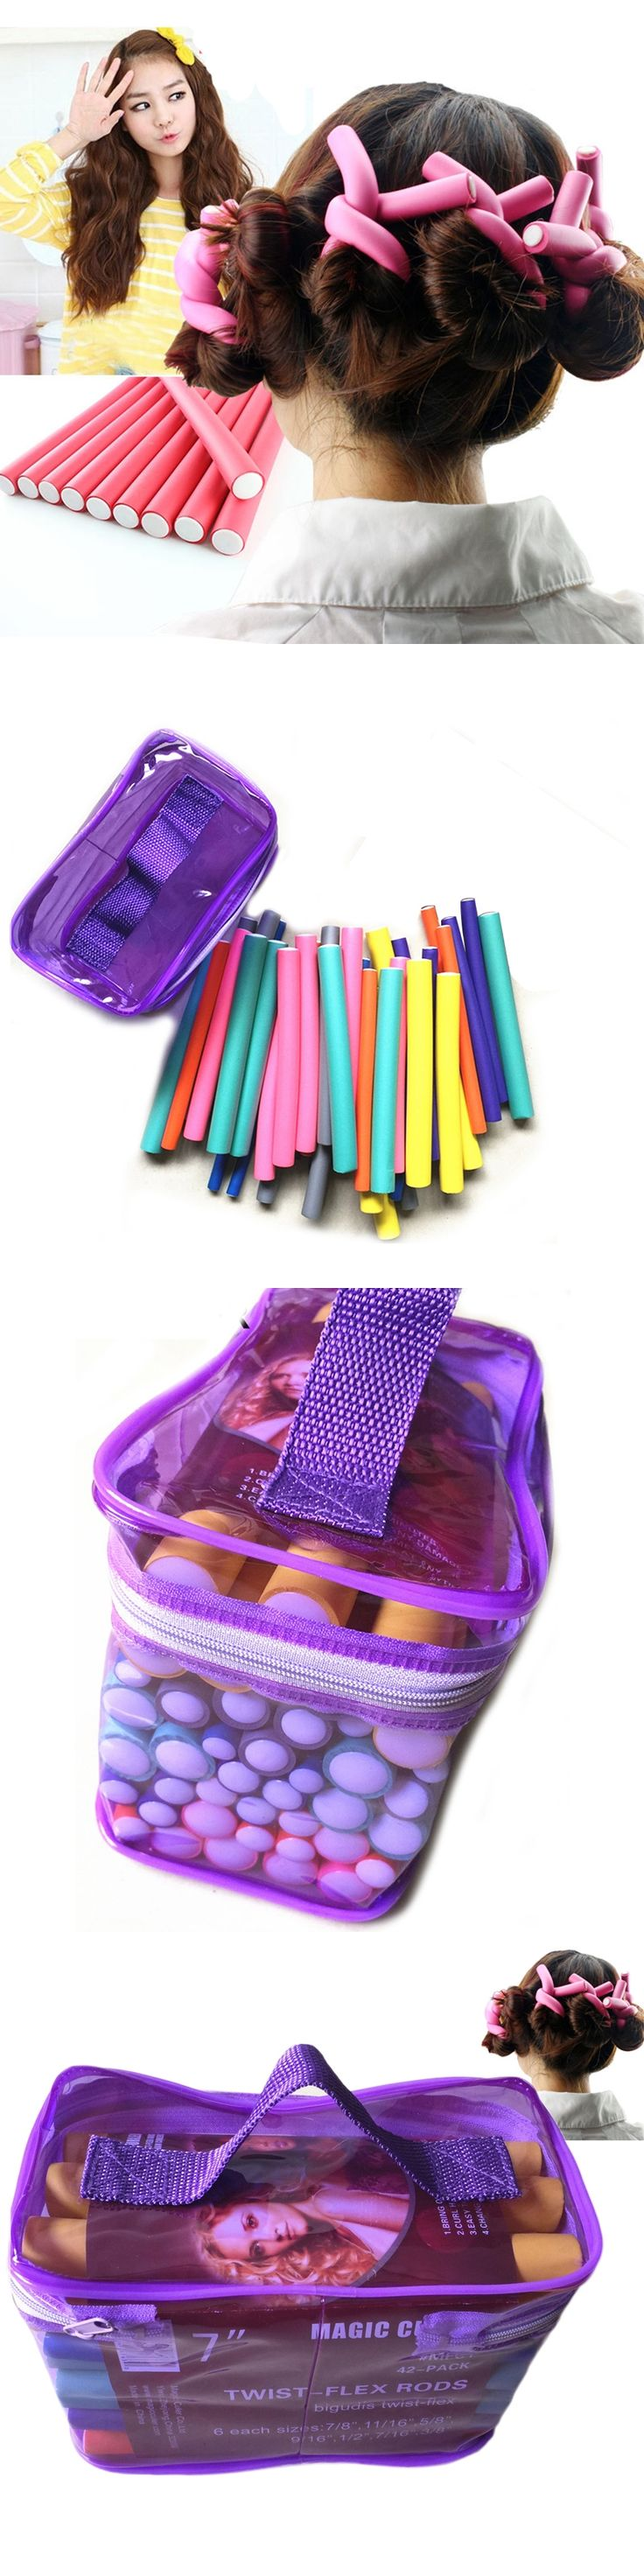 At Fashion bendy rollers flexi rods 42pcs/set 7 Styles DIY Hair curling rods Magic Hair Roller Soft flex rods for Hair